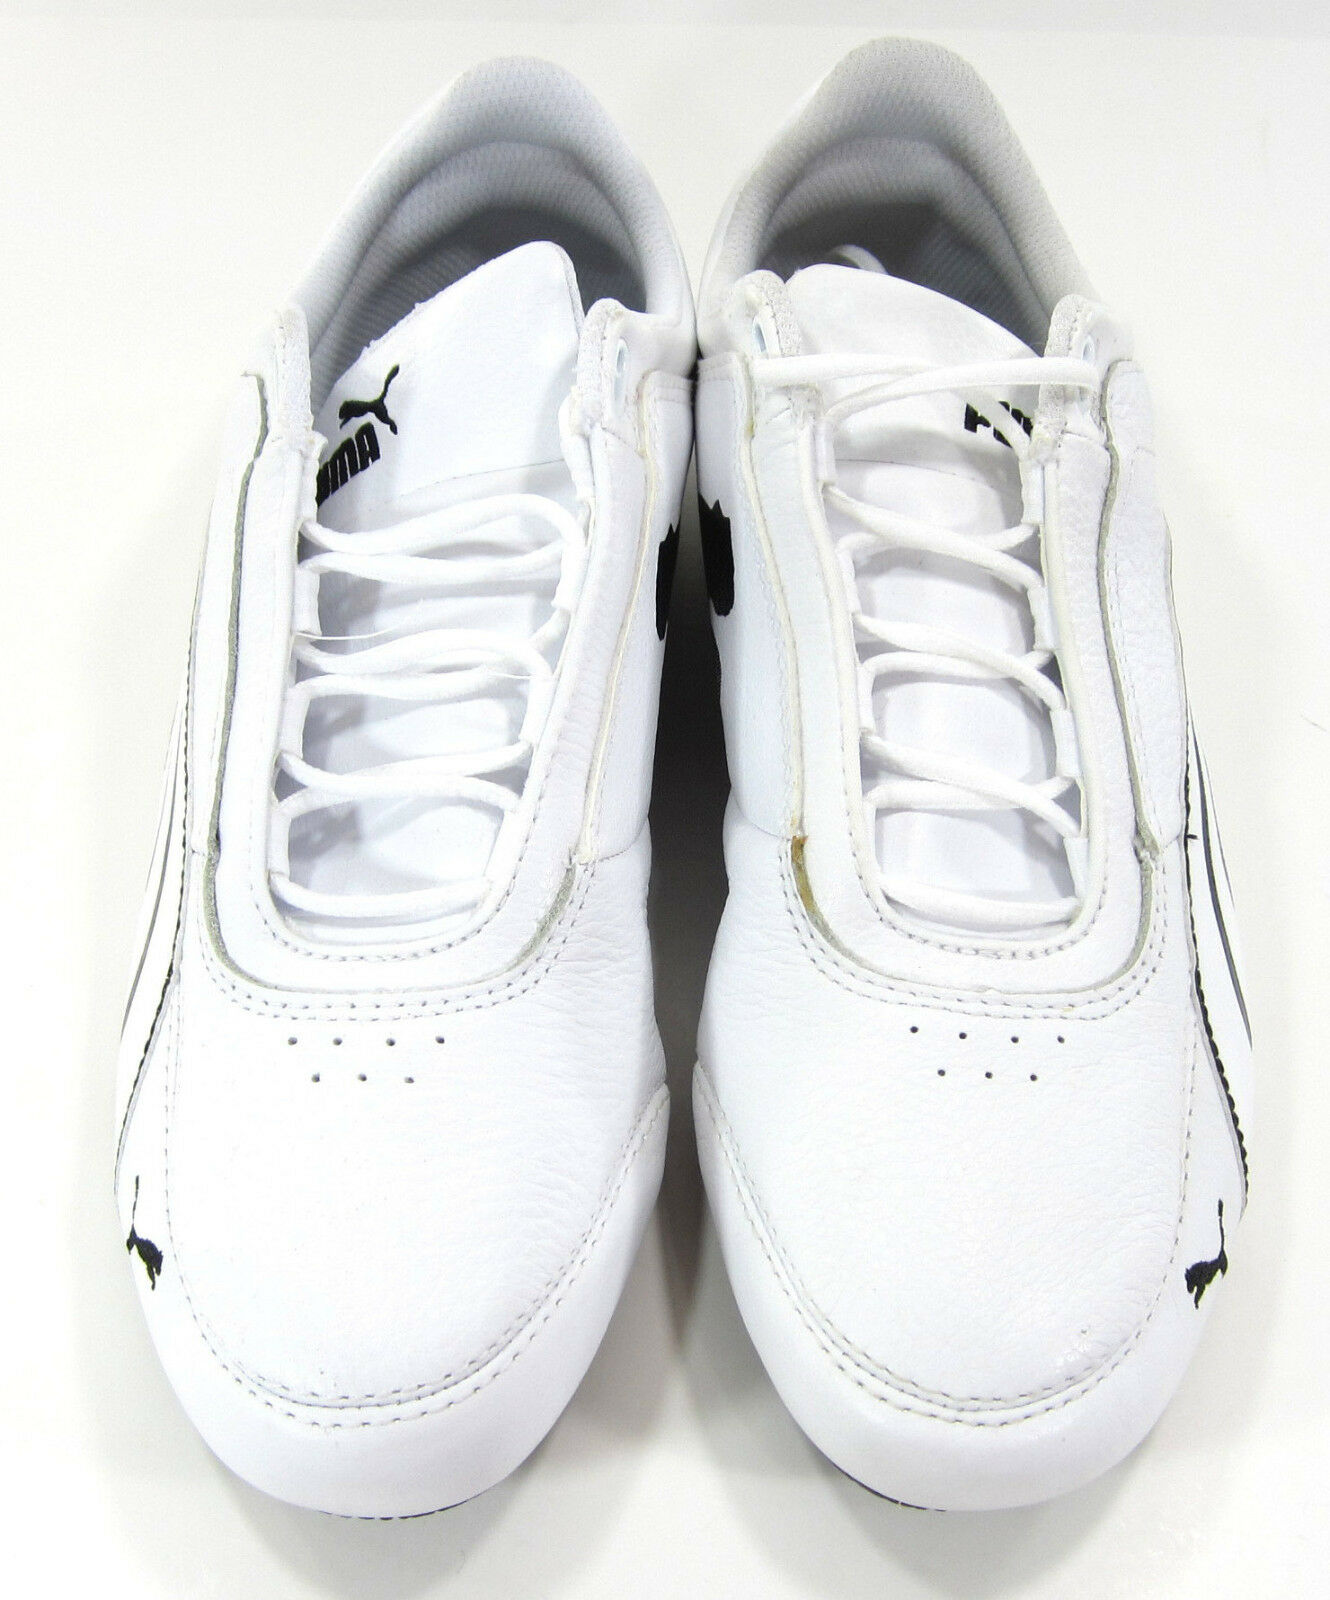 0734479eb ... Puma Shoes Drift Cat IV Leather White Black White Black White Black  Sneakers ...